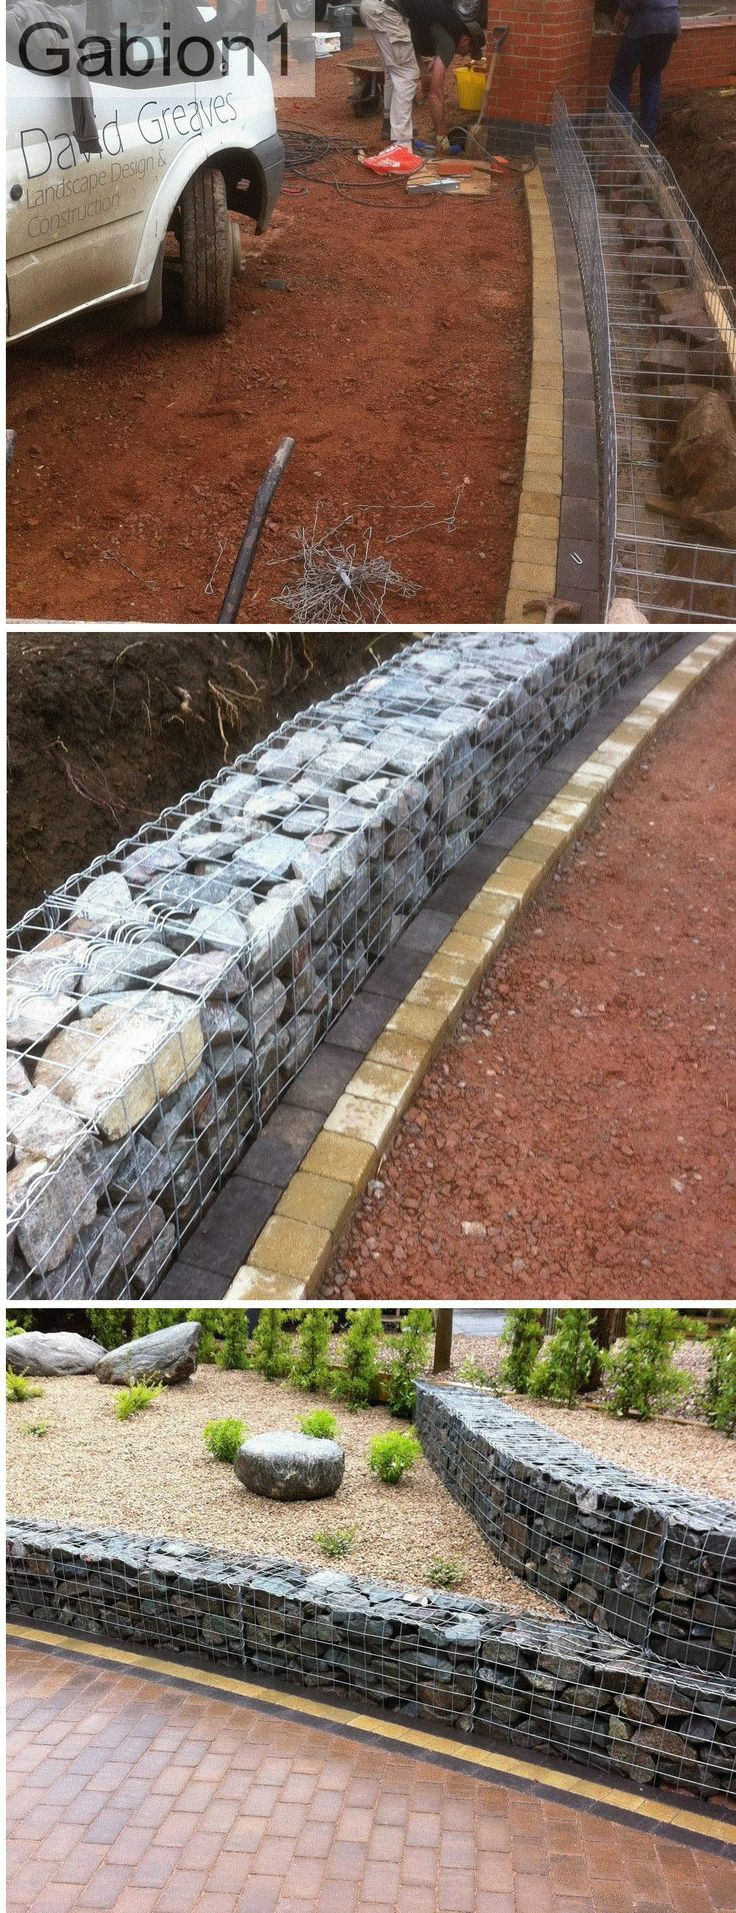 curved gabion wall built using 1050 x 450 x 375mm welded mesh gabions from http://www.gabion1.co.uk